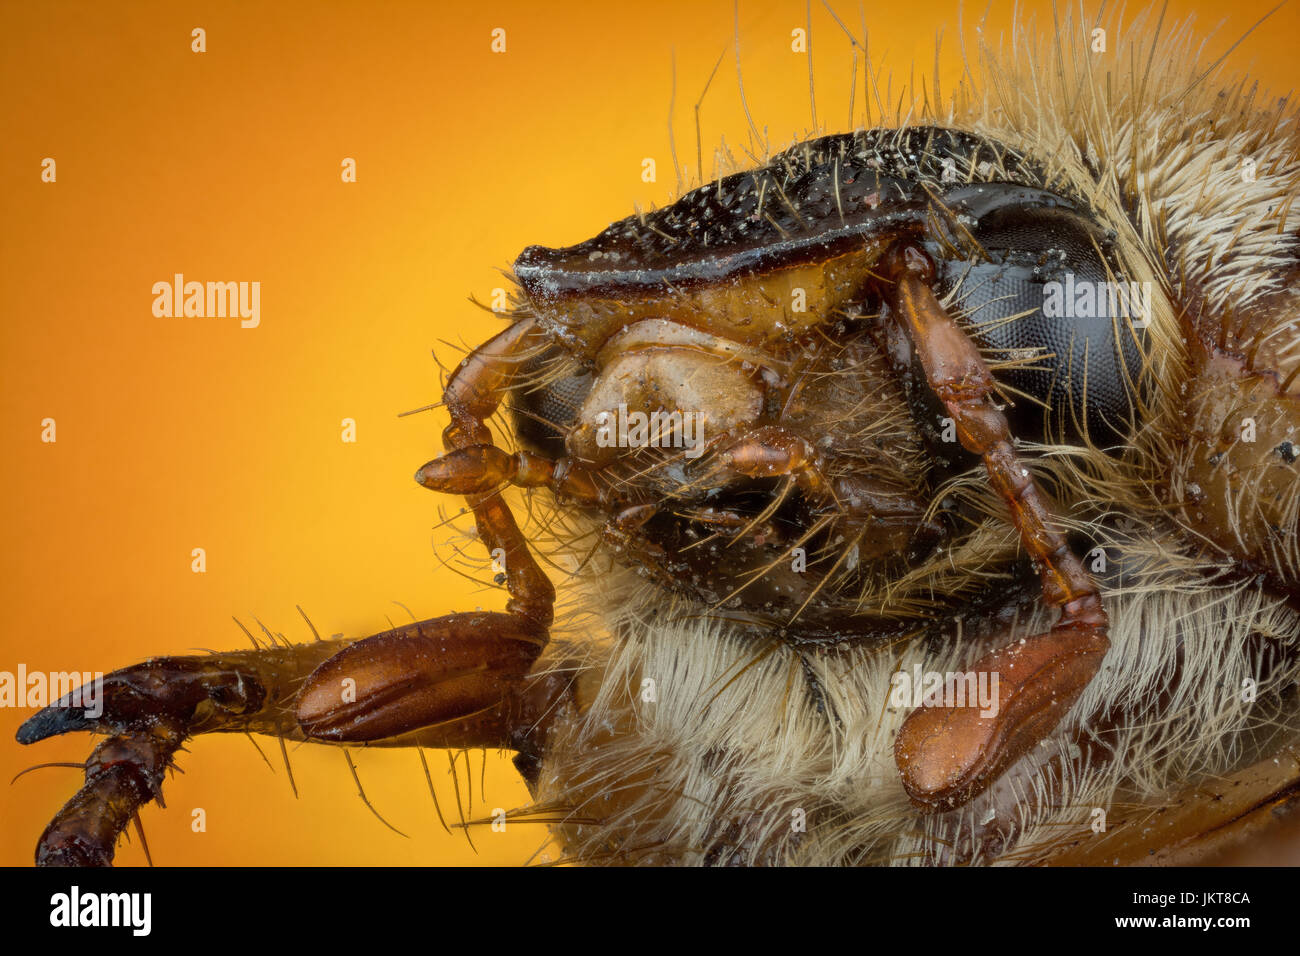 Head of Cockchafer on orange background macro or micro photography - Stock Image